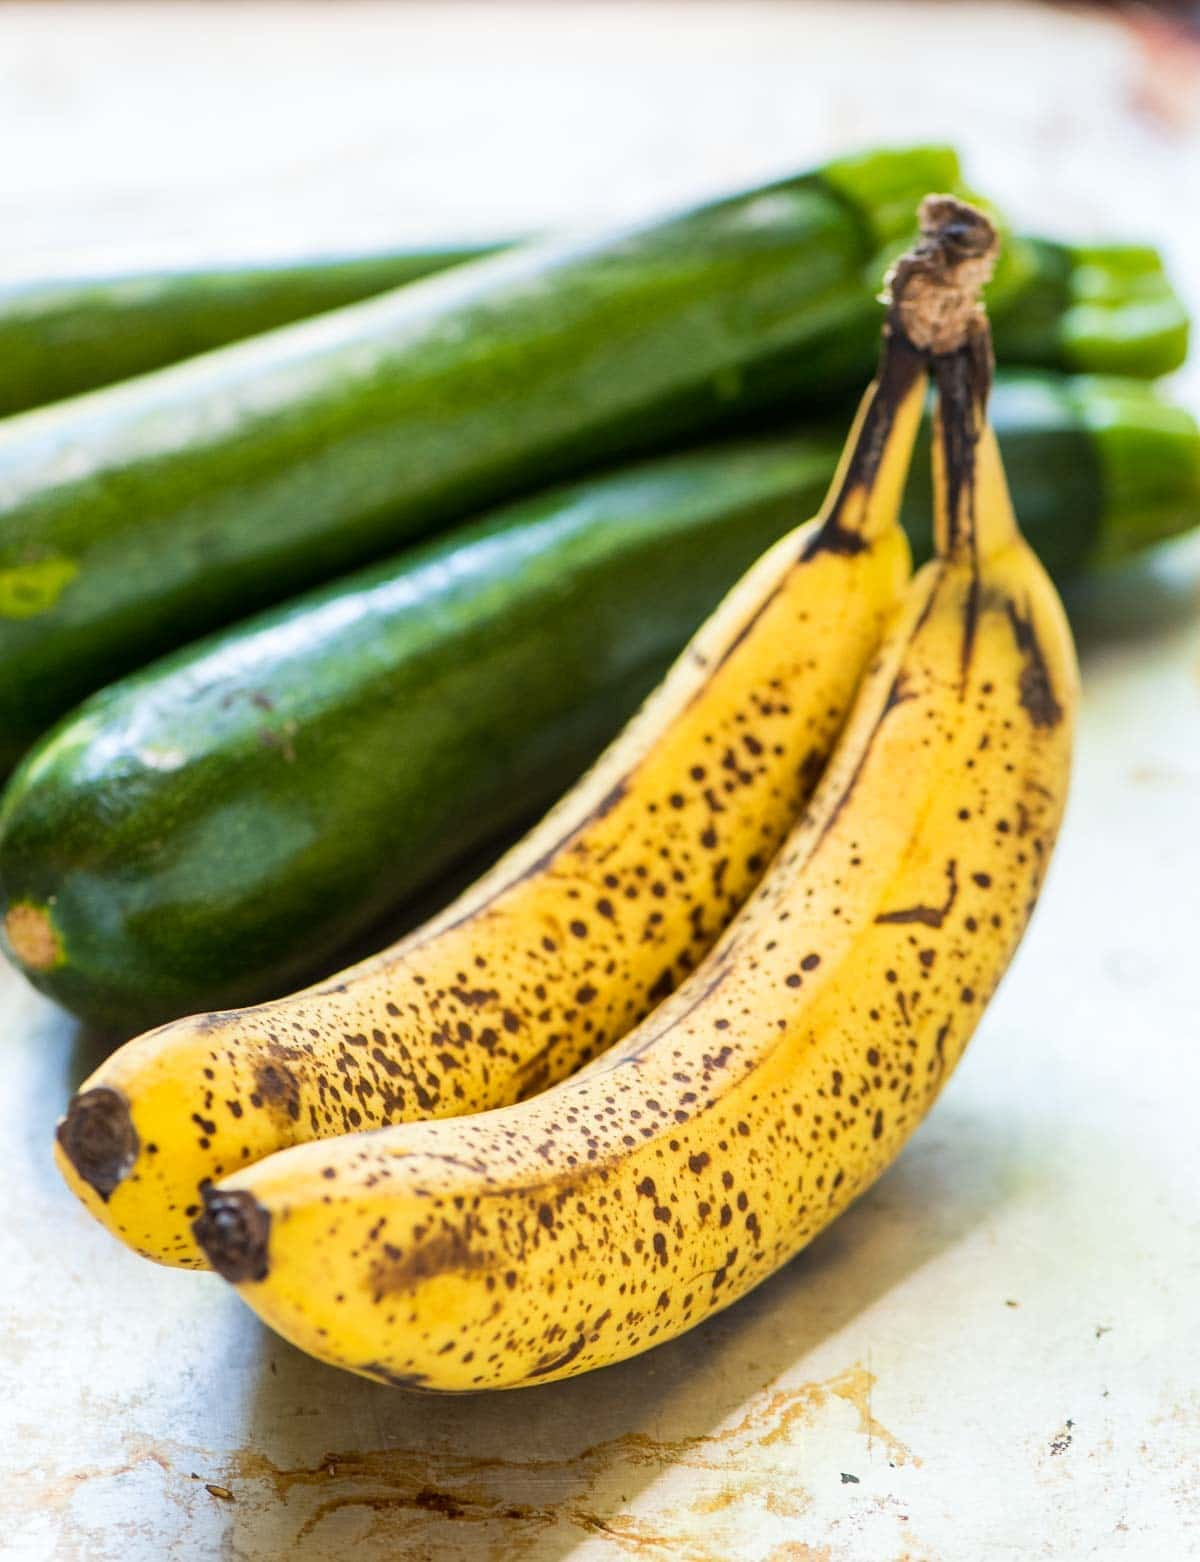 2 speckled ripe bananas and 3 whole zucchini